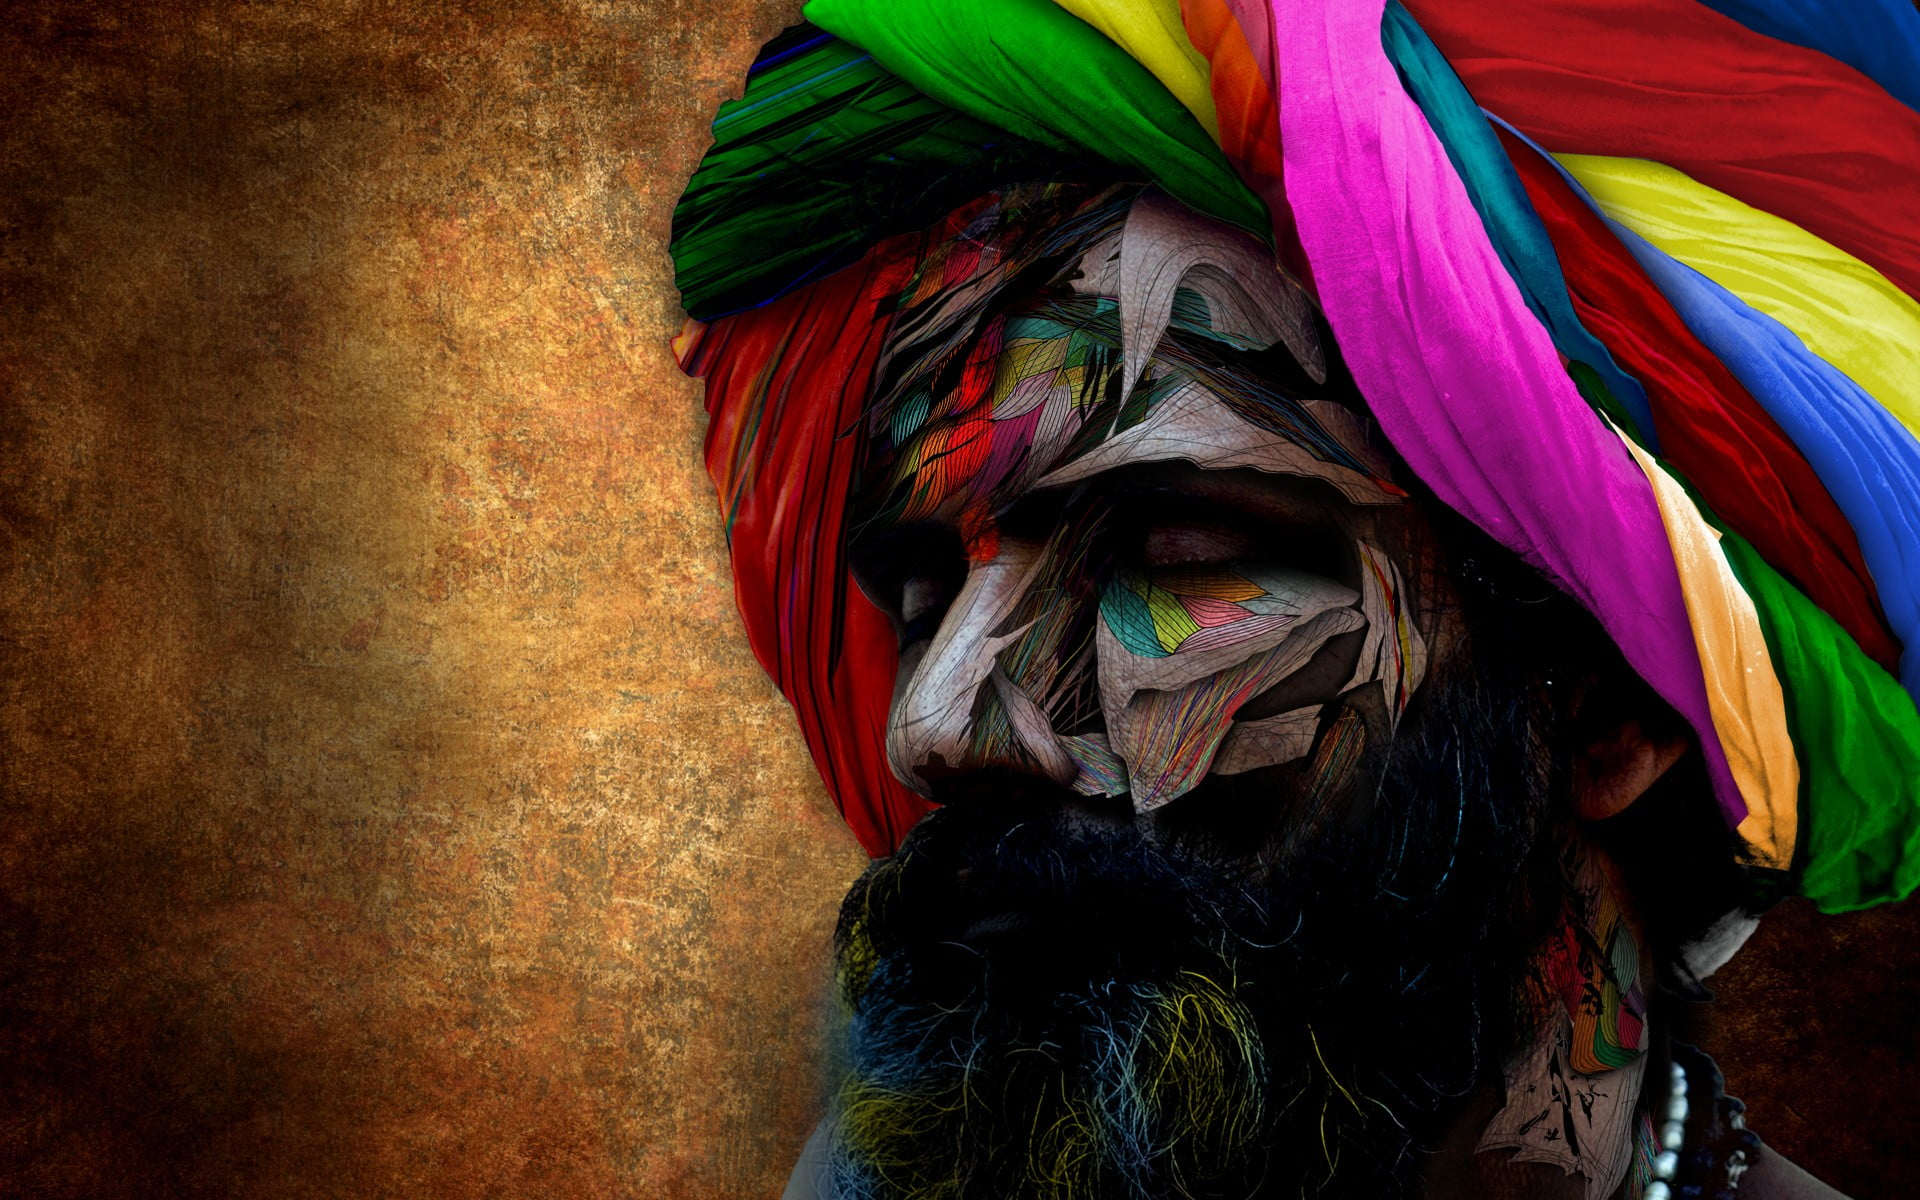 Multicolored bust with turban painting Indian headdress 1920x1200